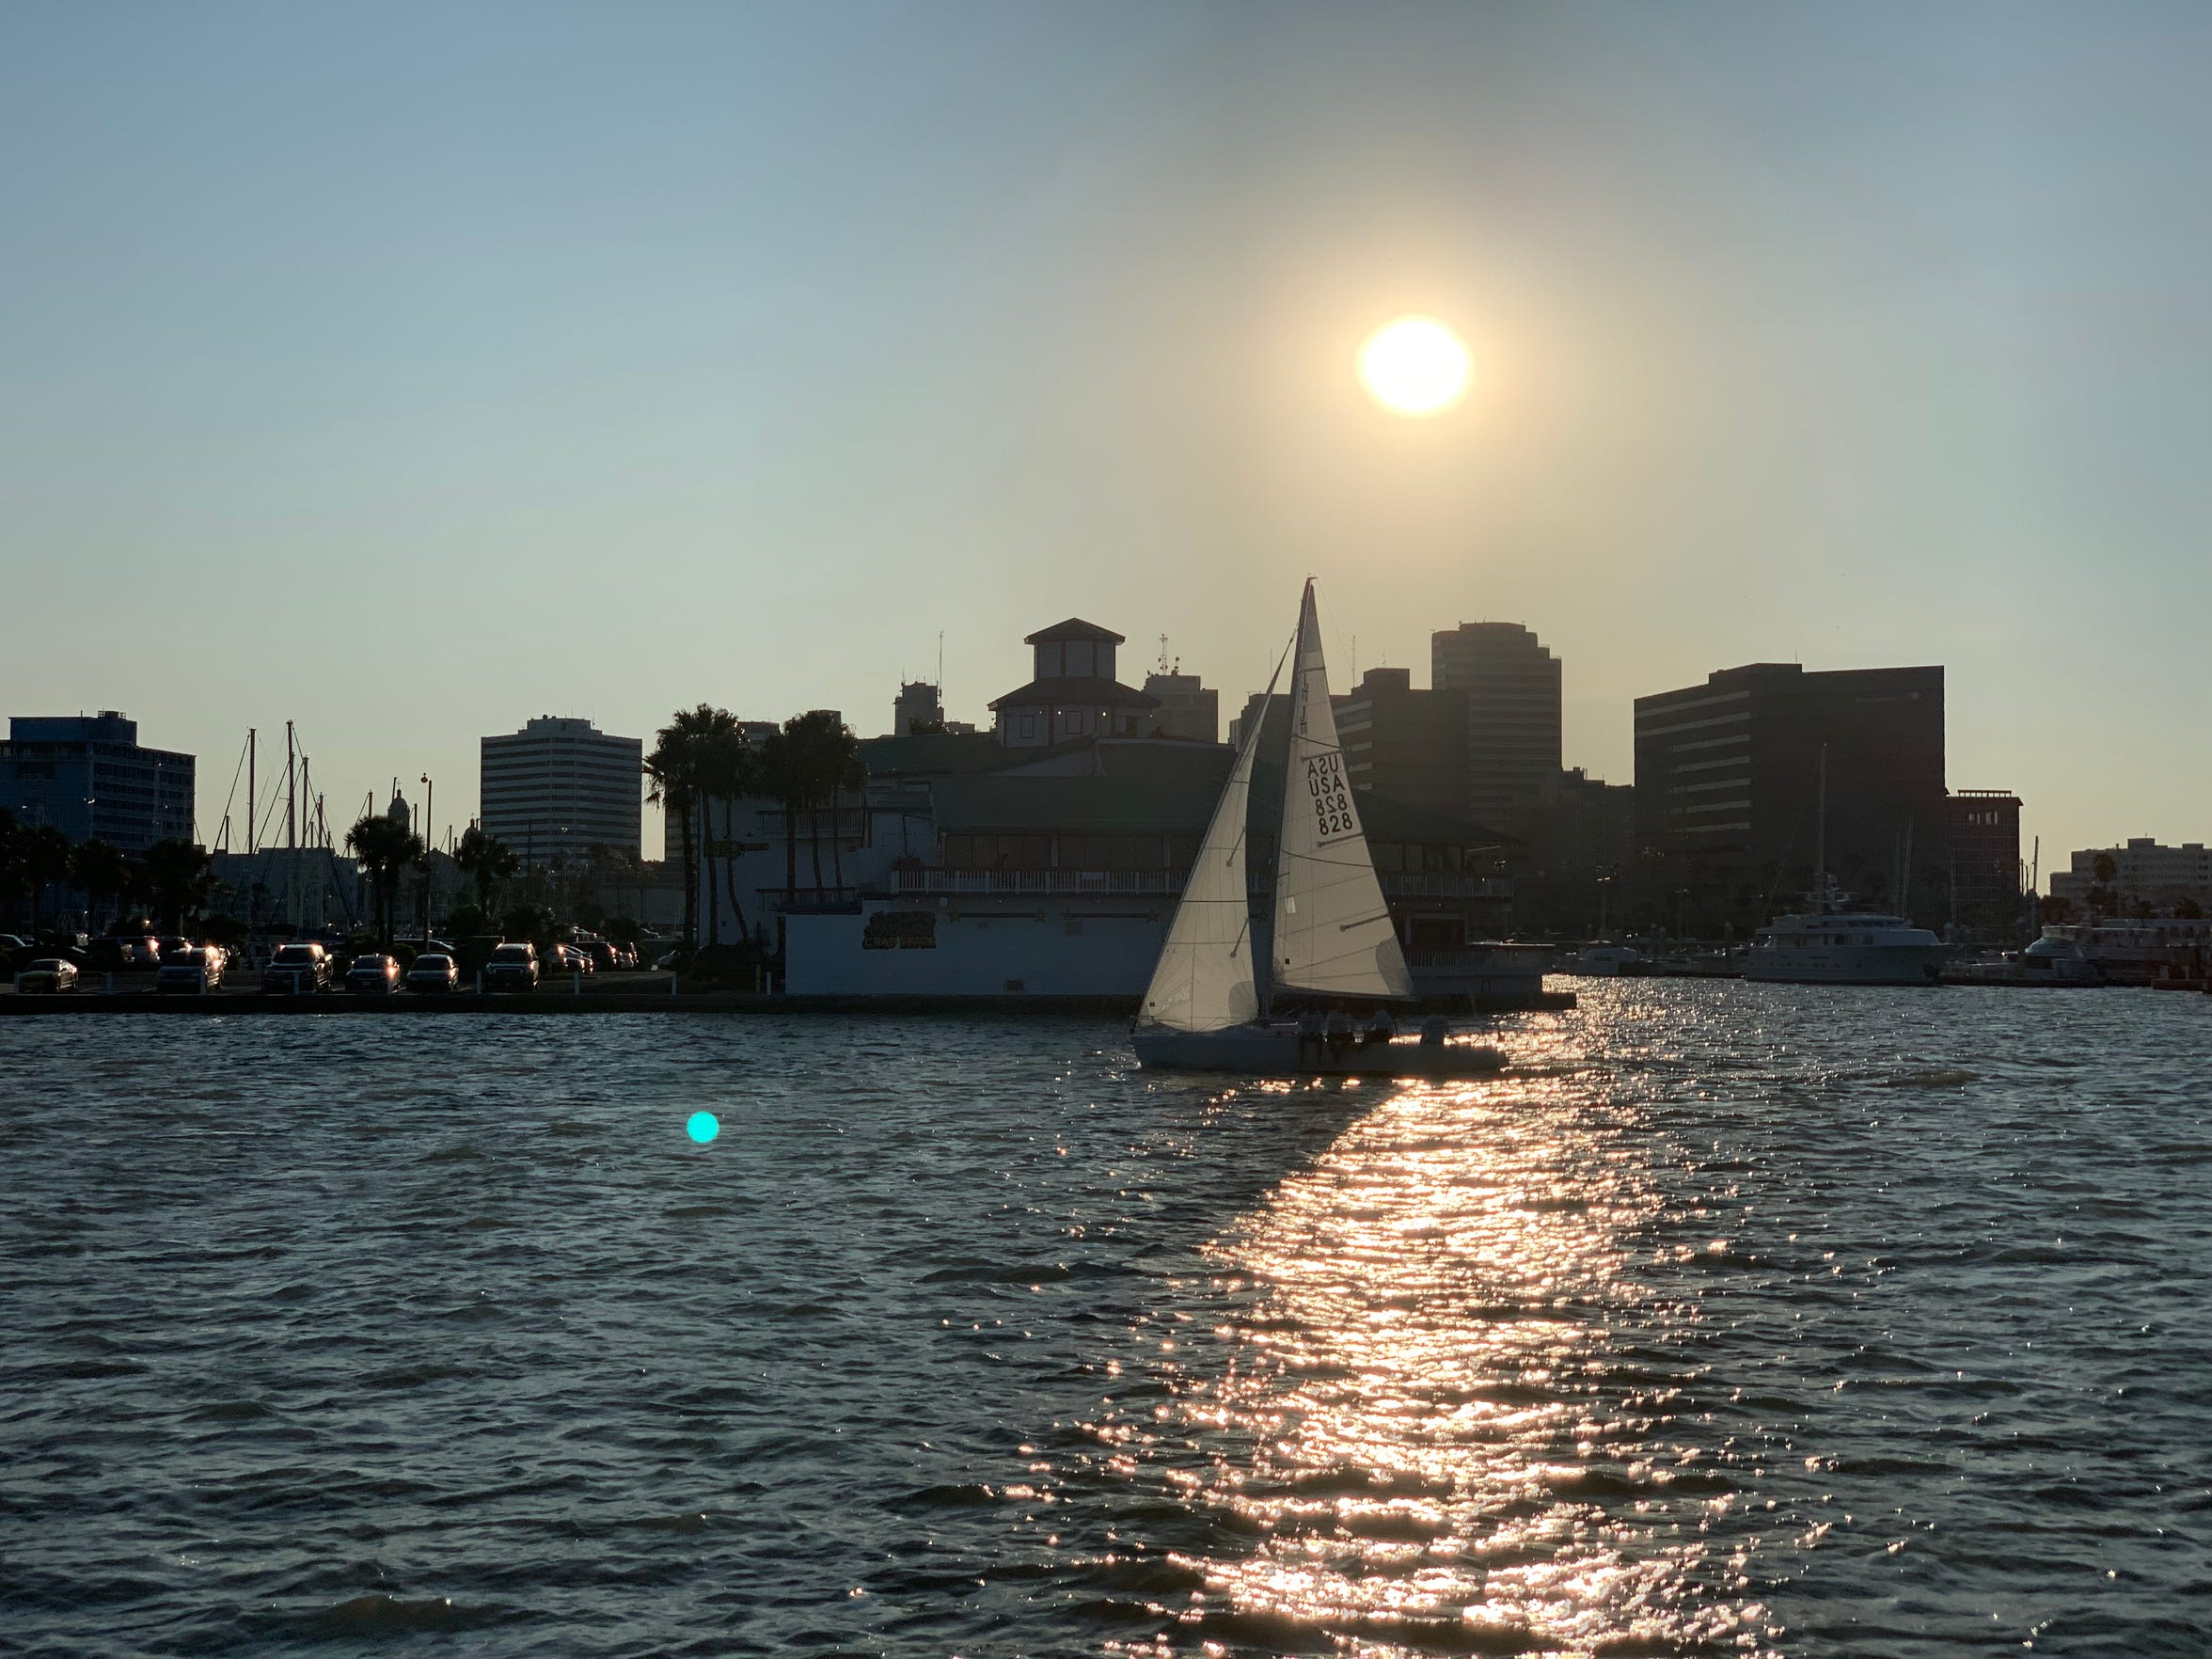 A sail boat passes by in Corpus Christi's downtown marina on Wednesday, July 24, 2019.